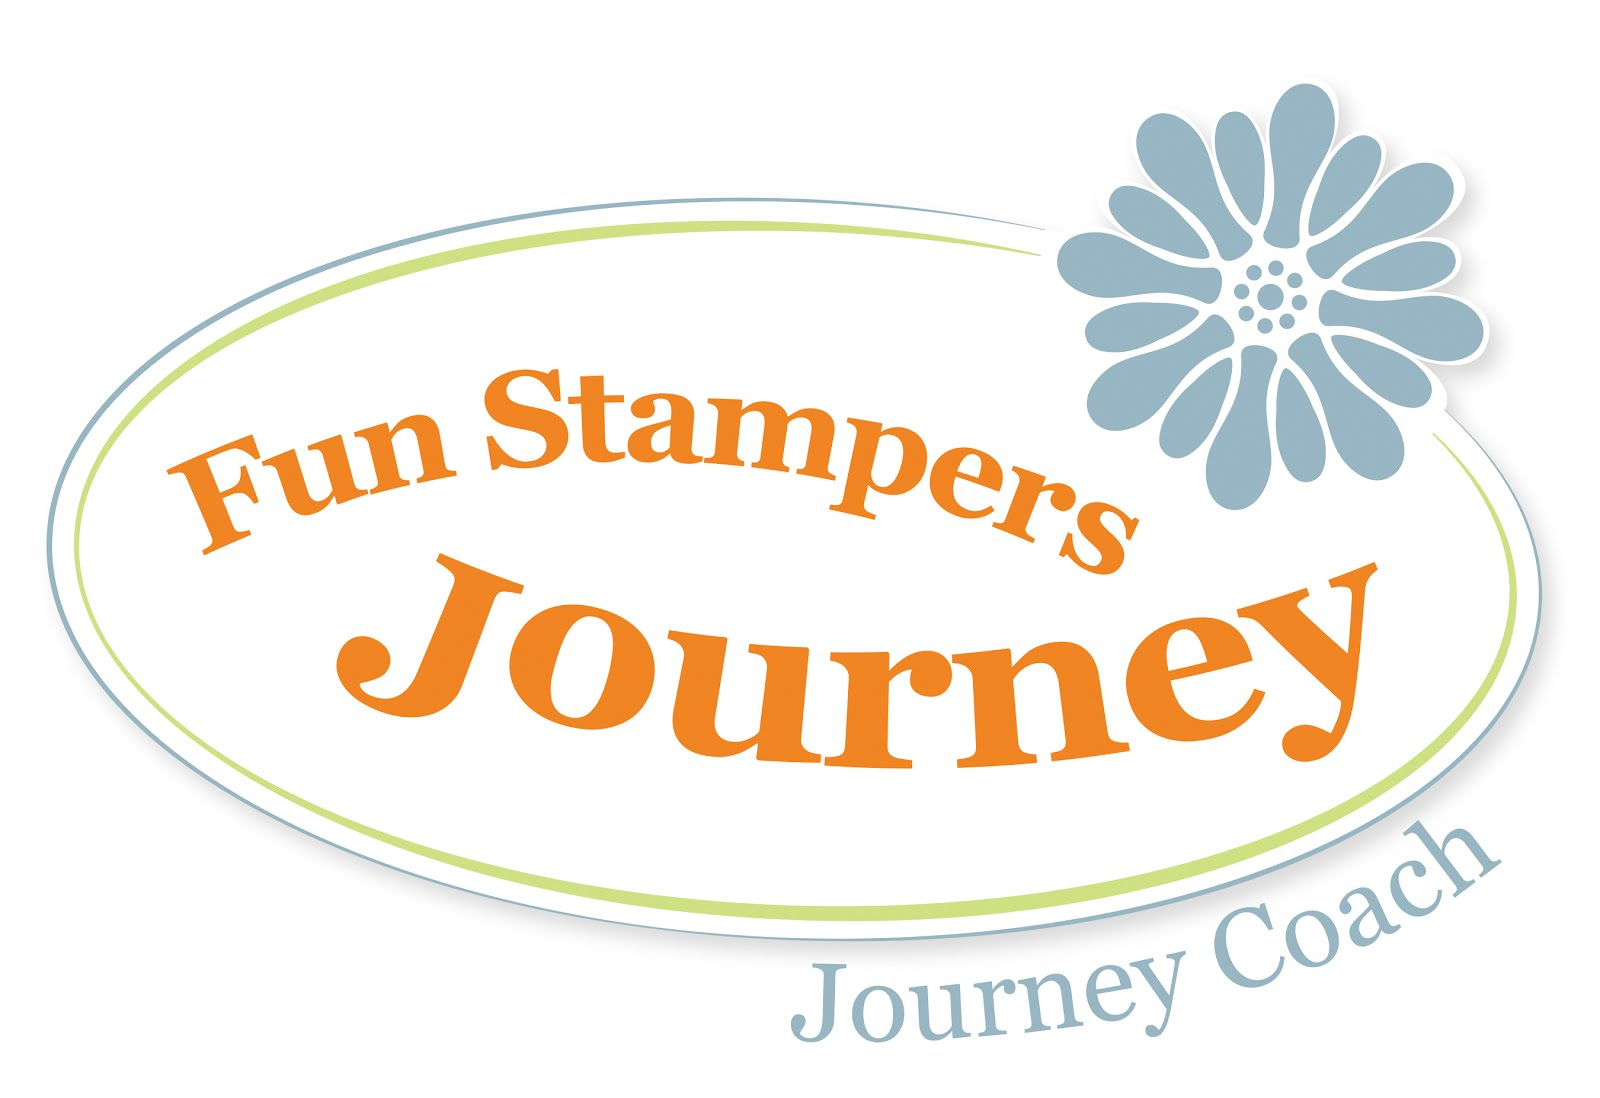 Fun Stampers Journey